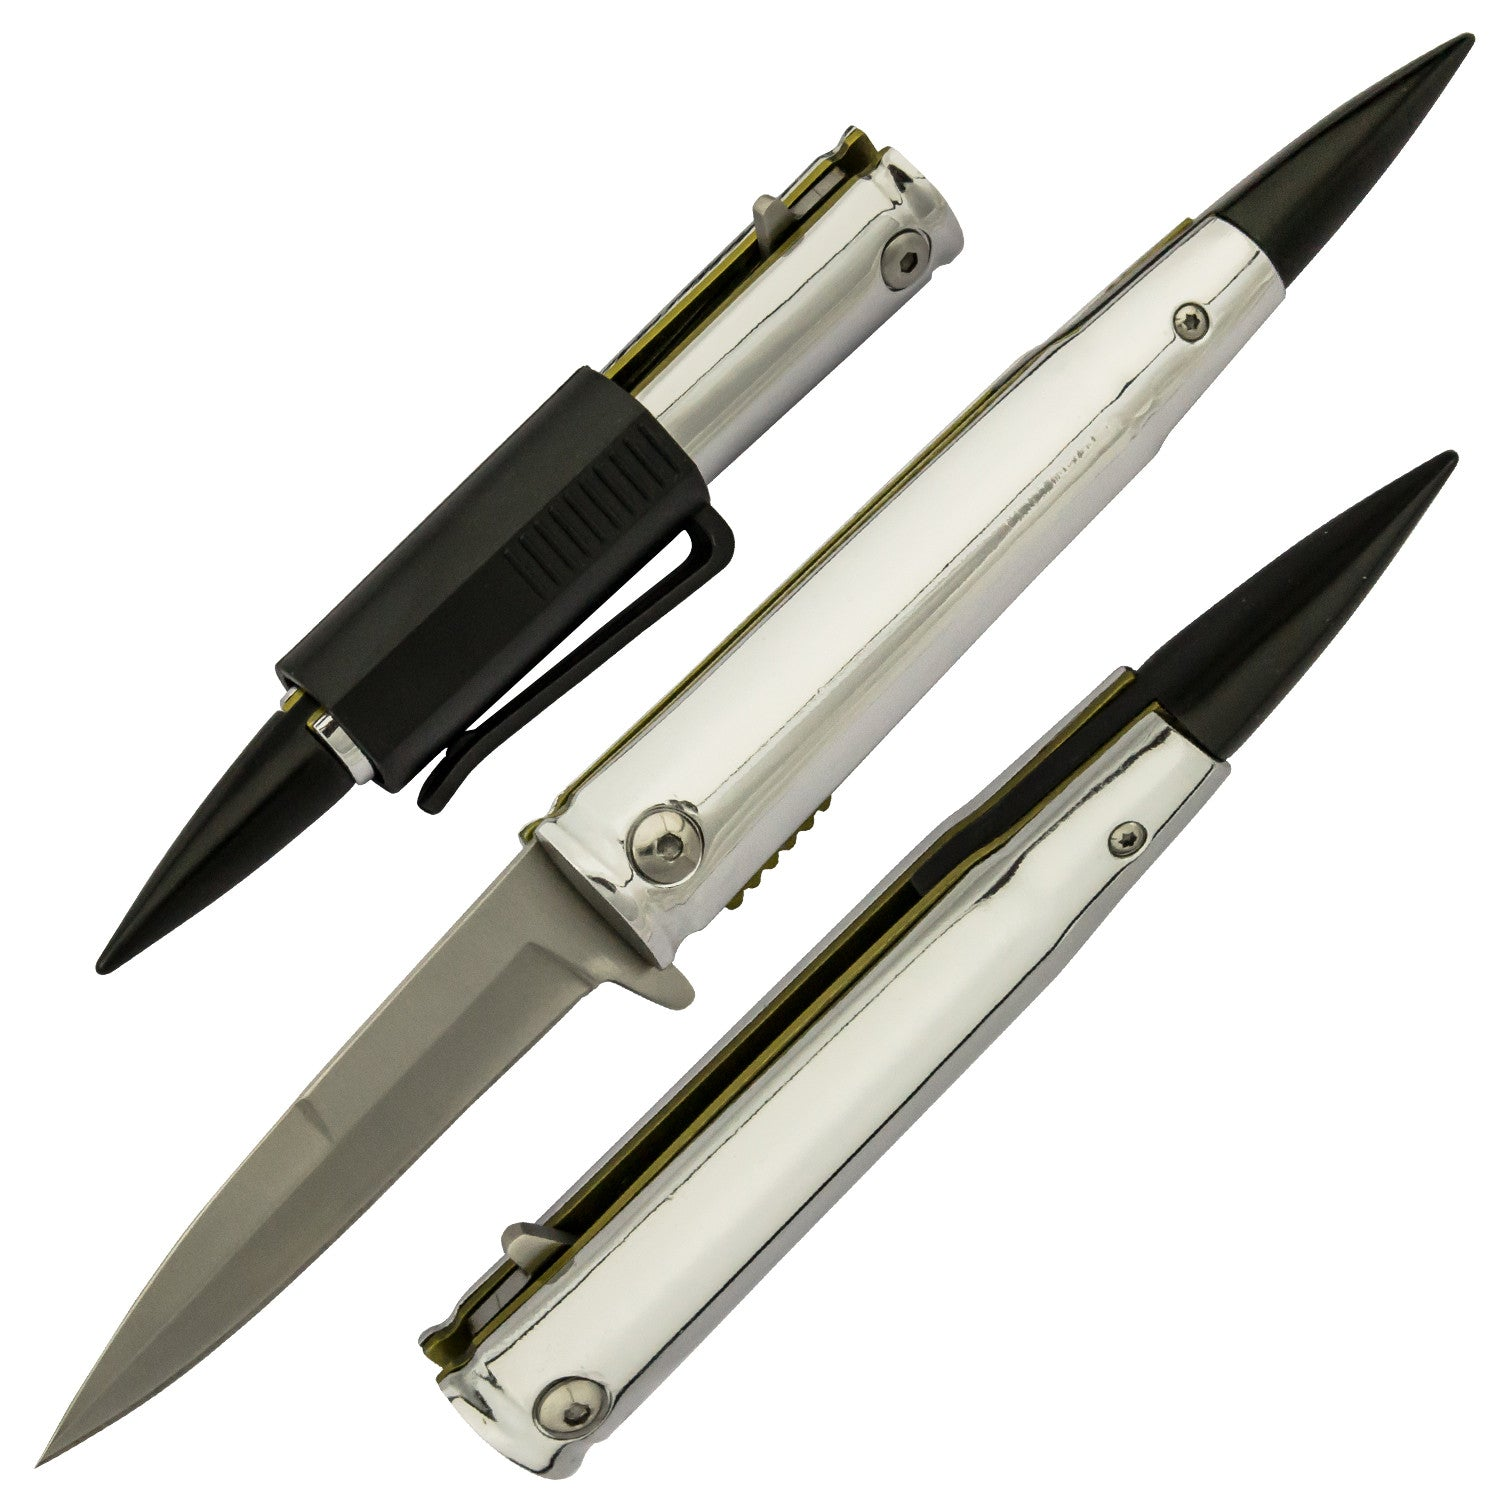 .50 Cal Trigger ActionBullet KNIFE with Removable Pocket Clip